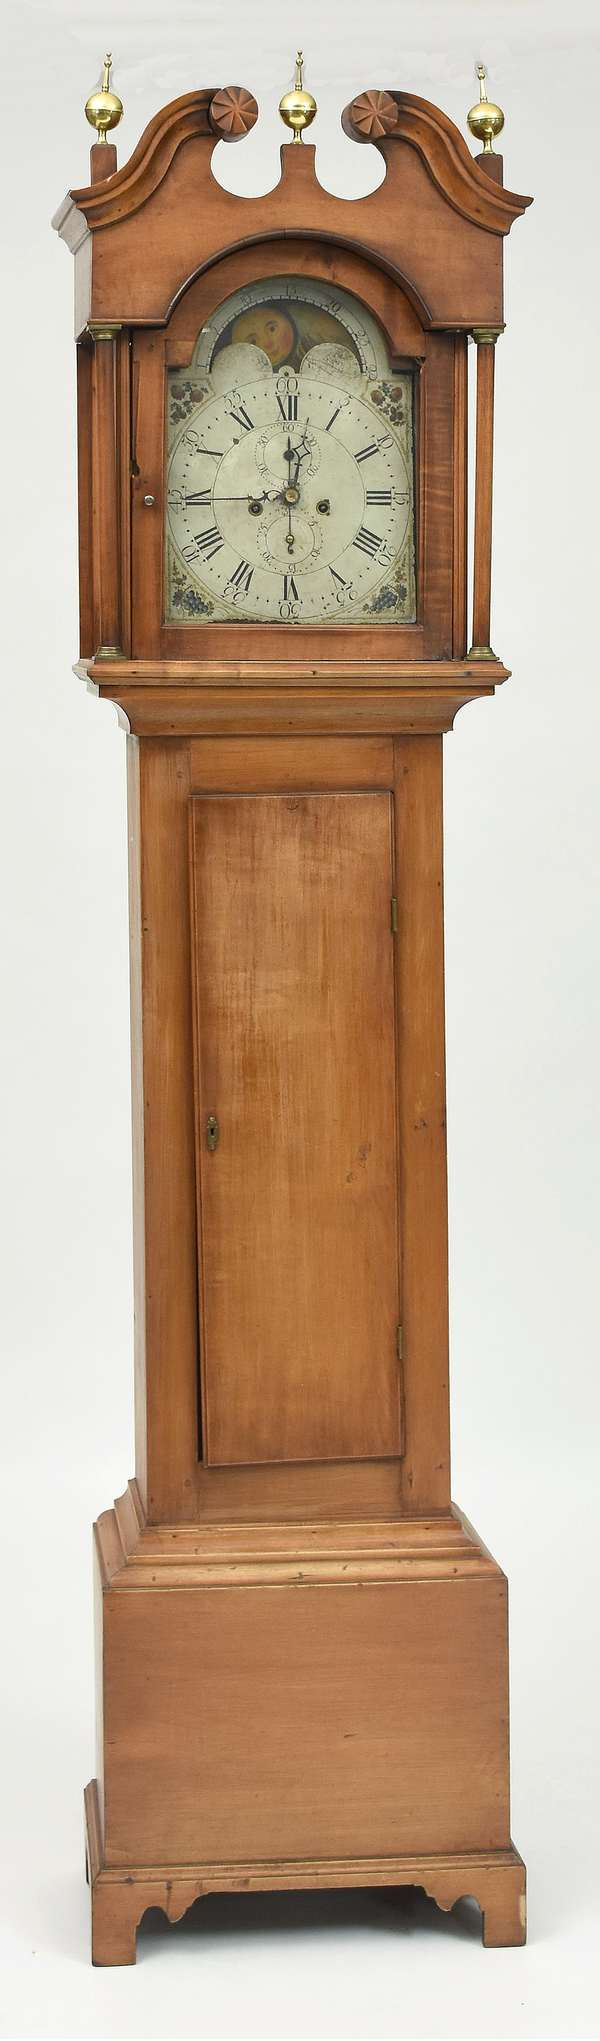 Federal Concord NH maple tall clock, brass works, ca. 1800, 88.5